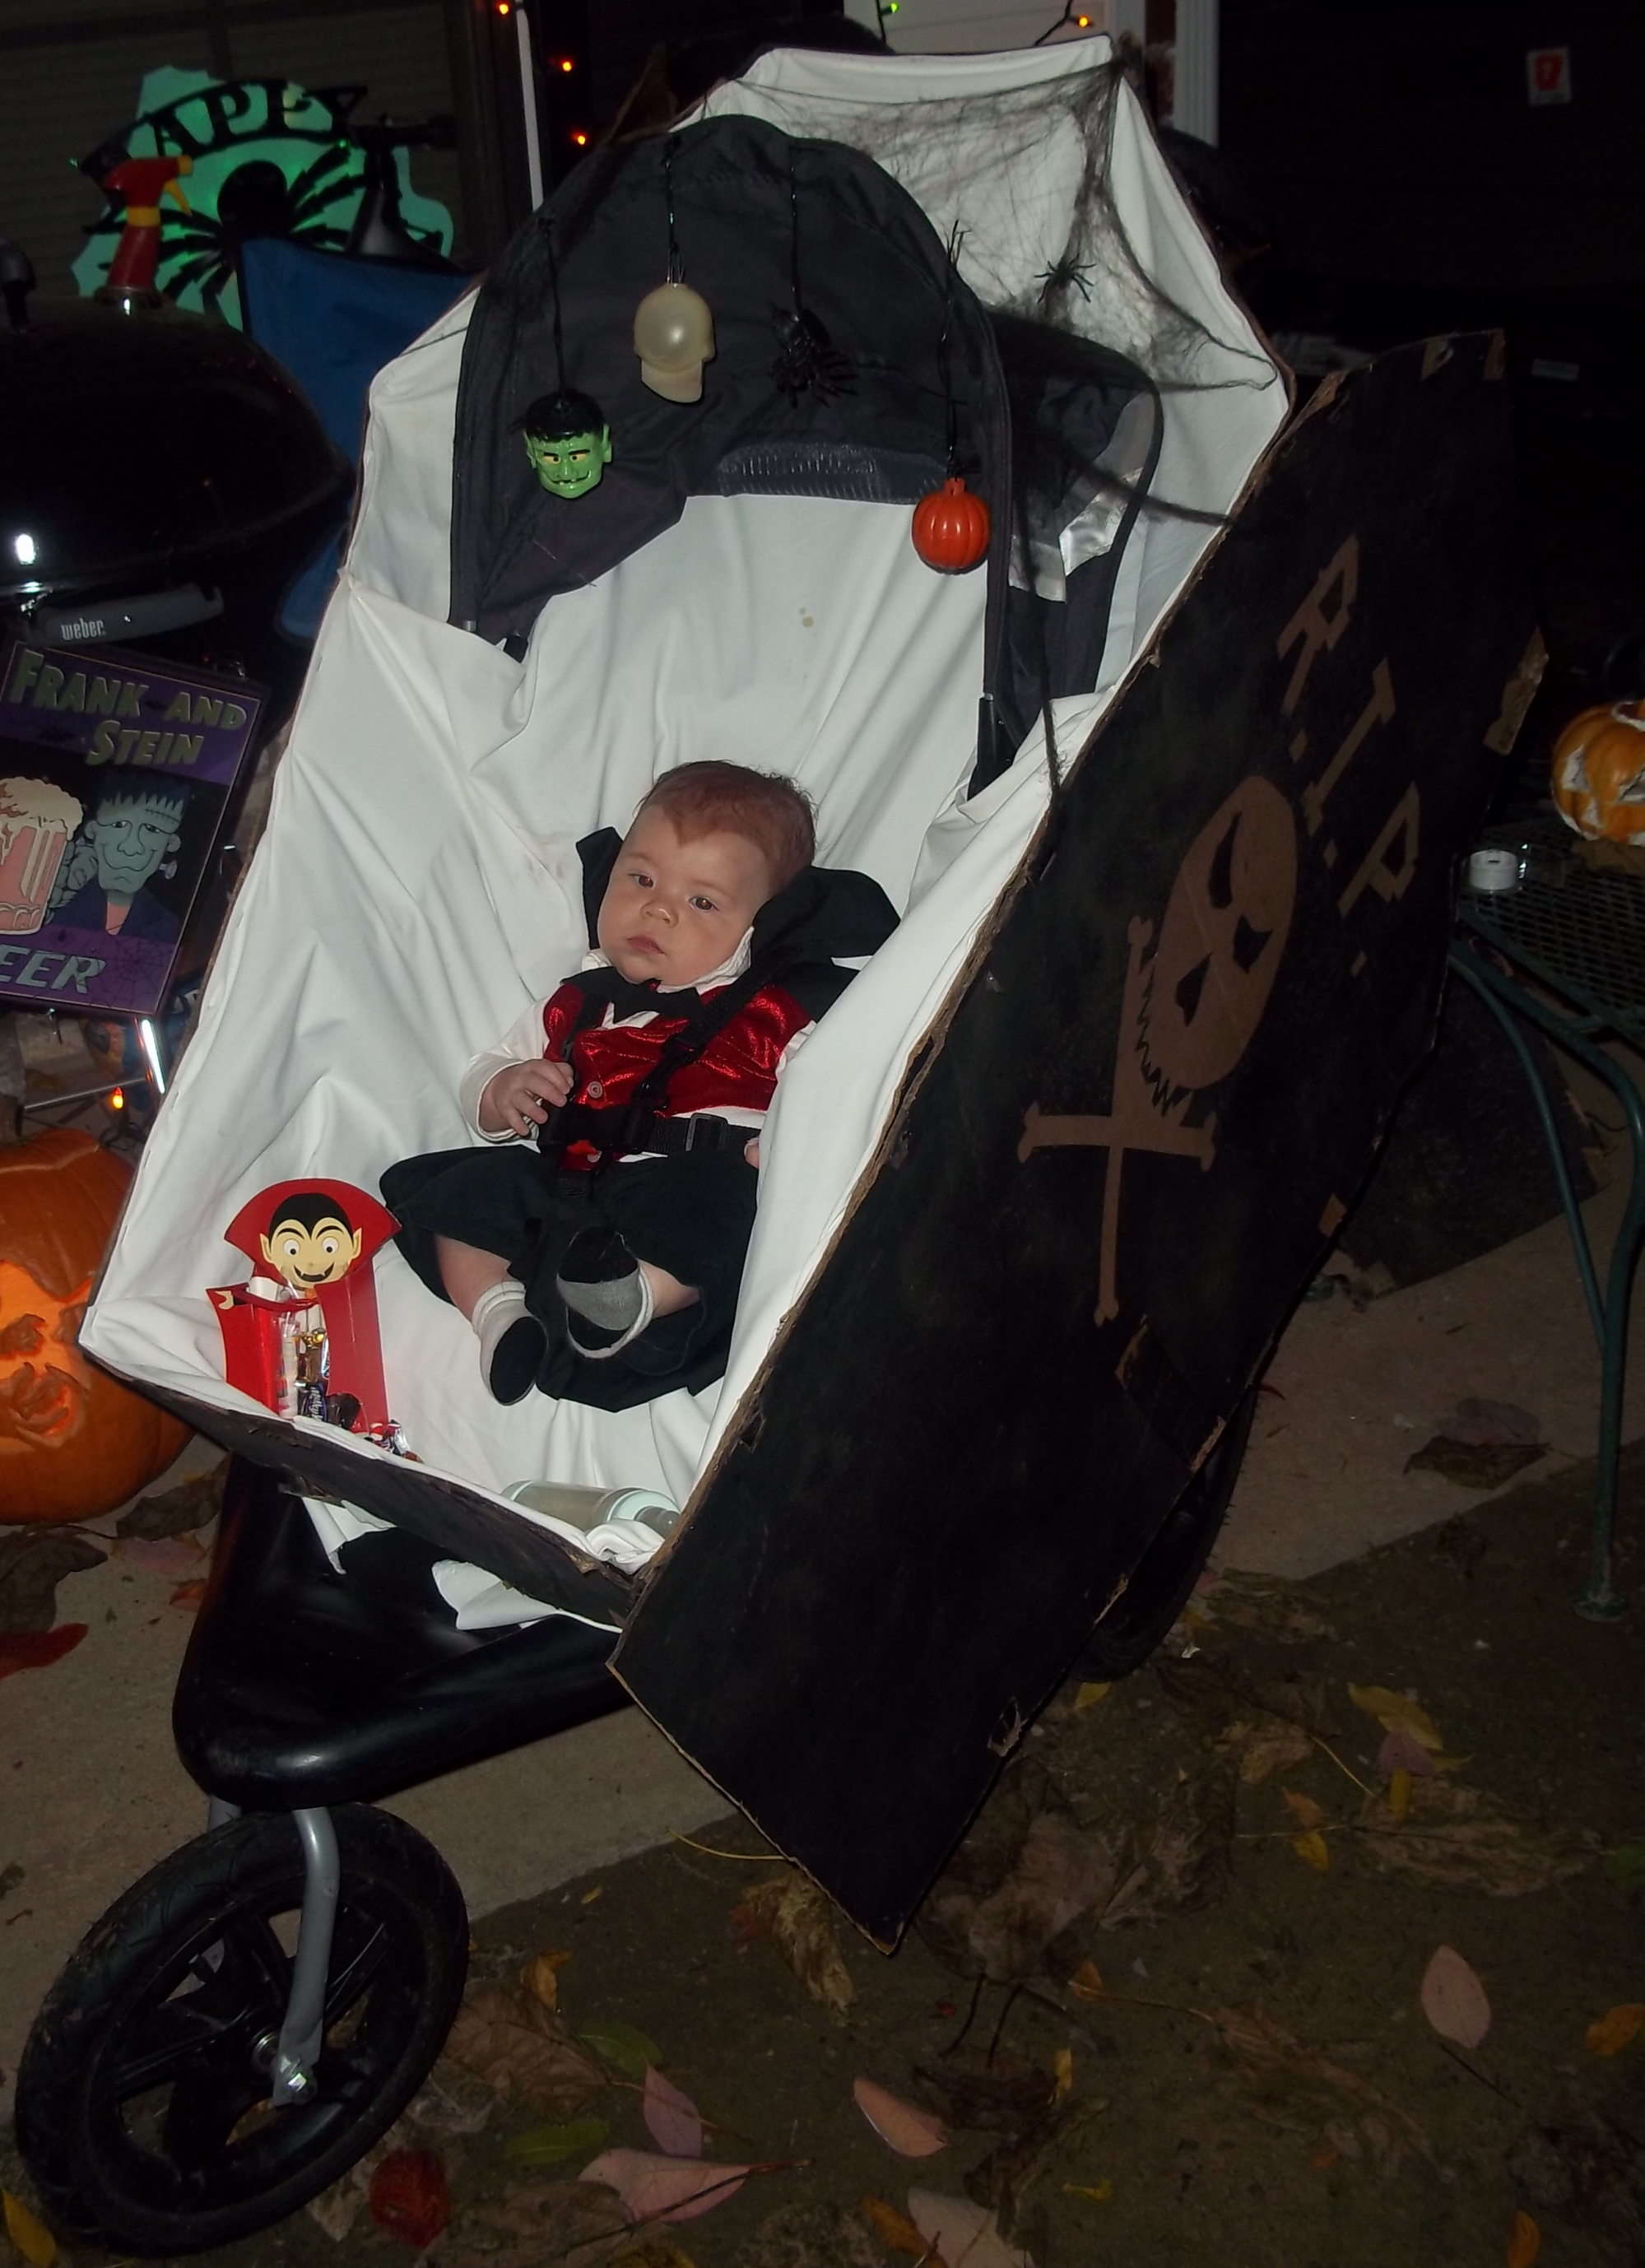 3 and 1/2 month old Baby Daniel was dressed as Dracula for his first Halloween. He was escorted around to trick or treat in his stroller coffin. Everything was homemade by momma Susie.